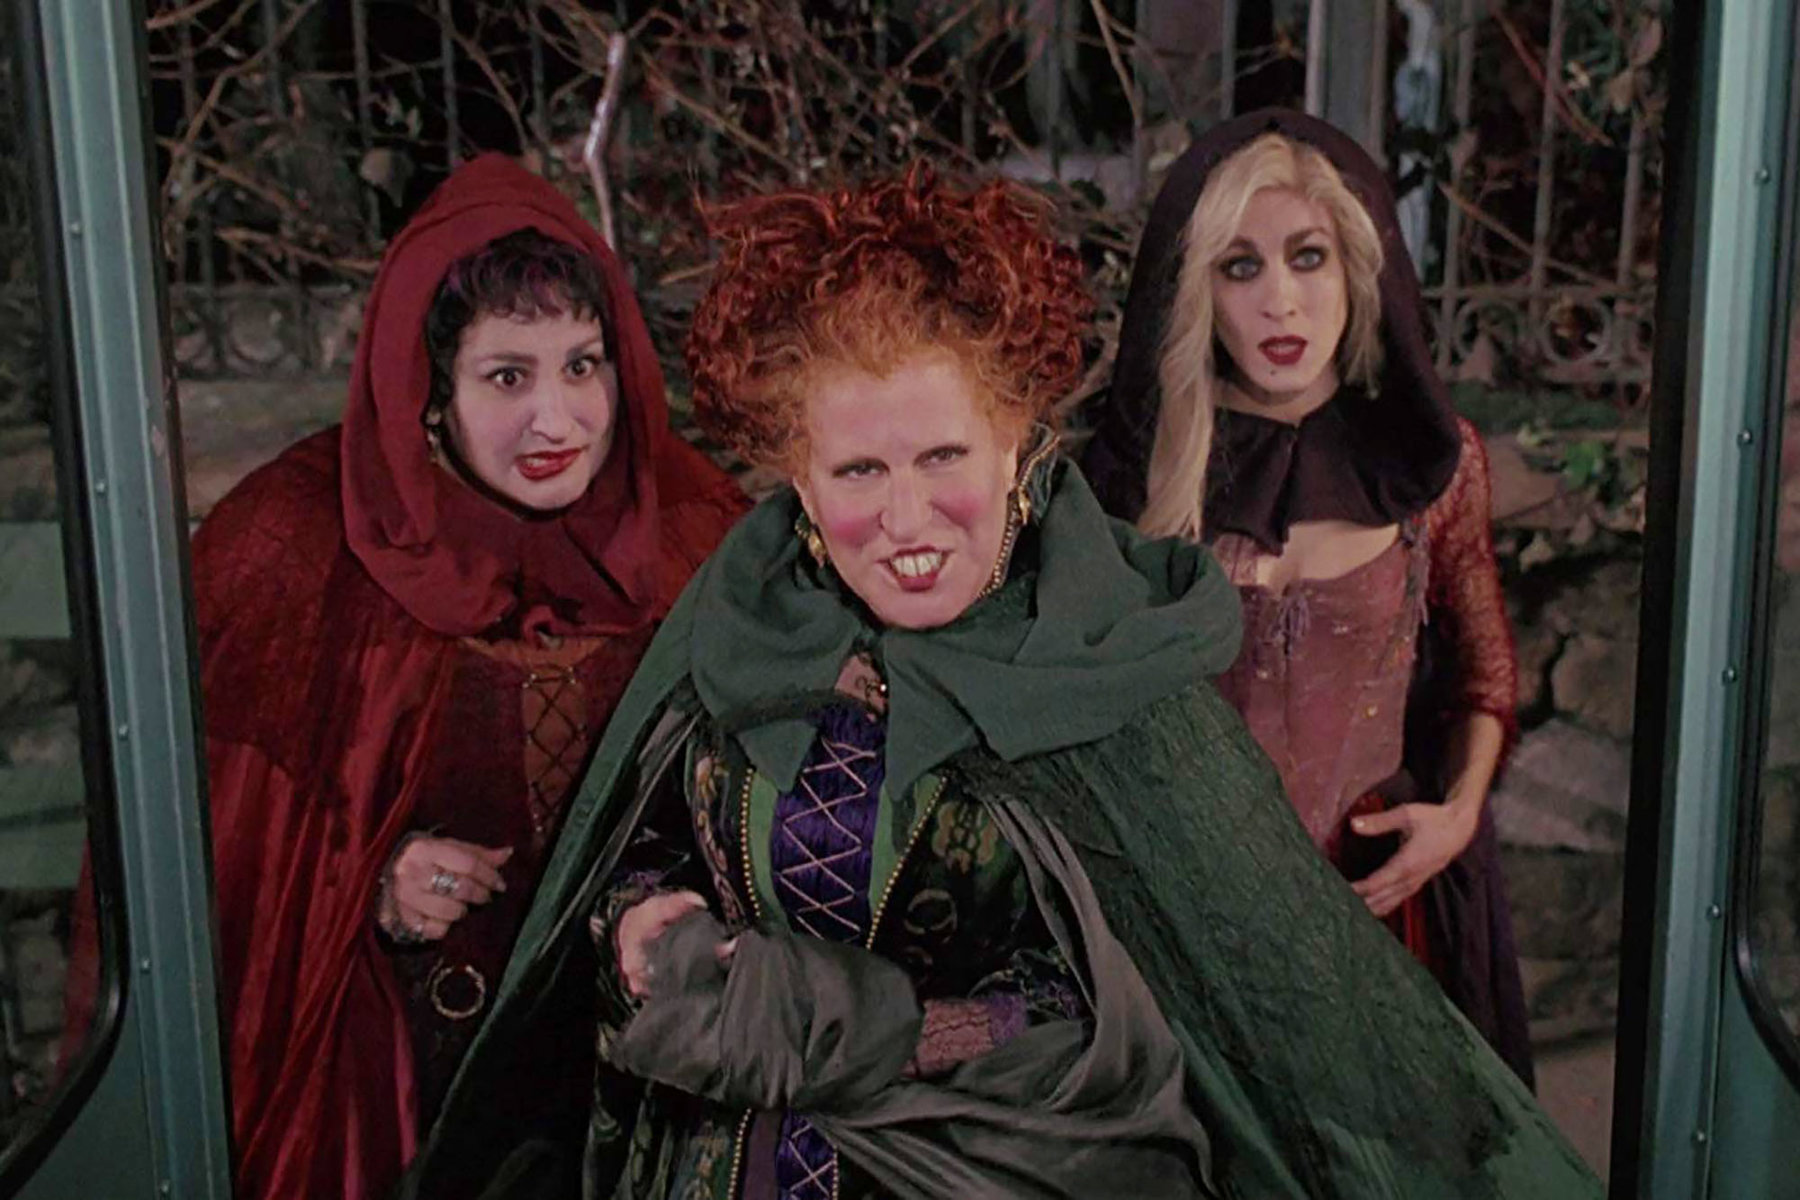 Get your dog ready for halloween with our top picks for the best pet halloween costumes for 2020. Hocus Pocus 2 Takes Step Towards Possible Halloween 2021 Release Date | Den of Geek